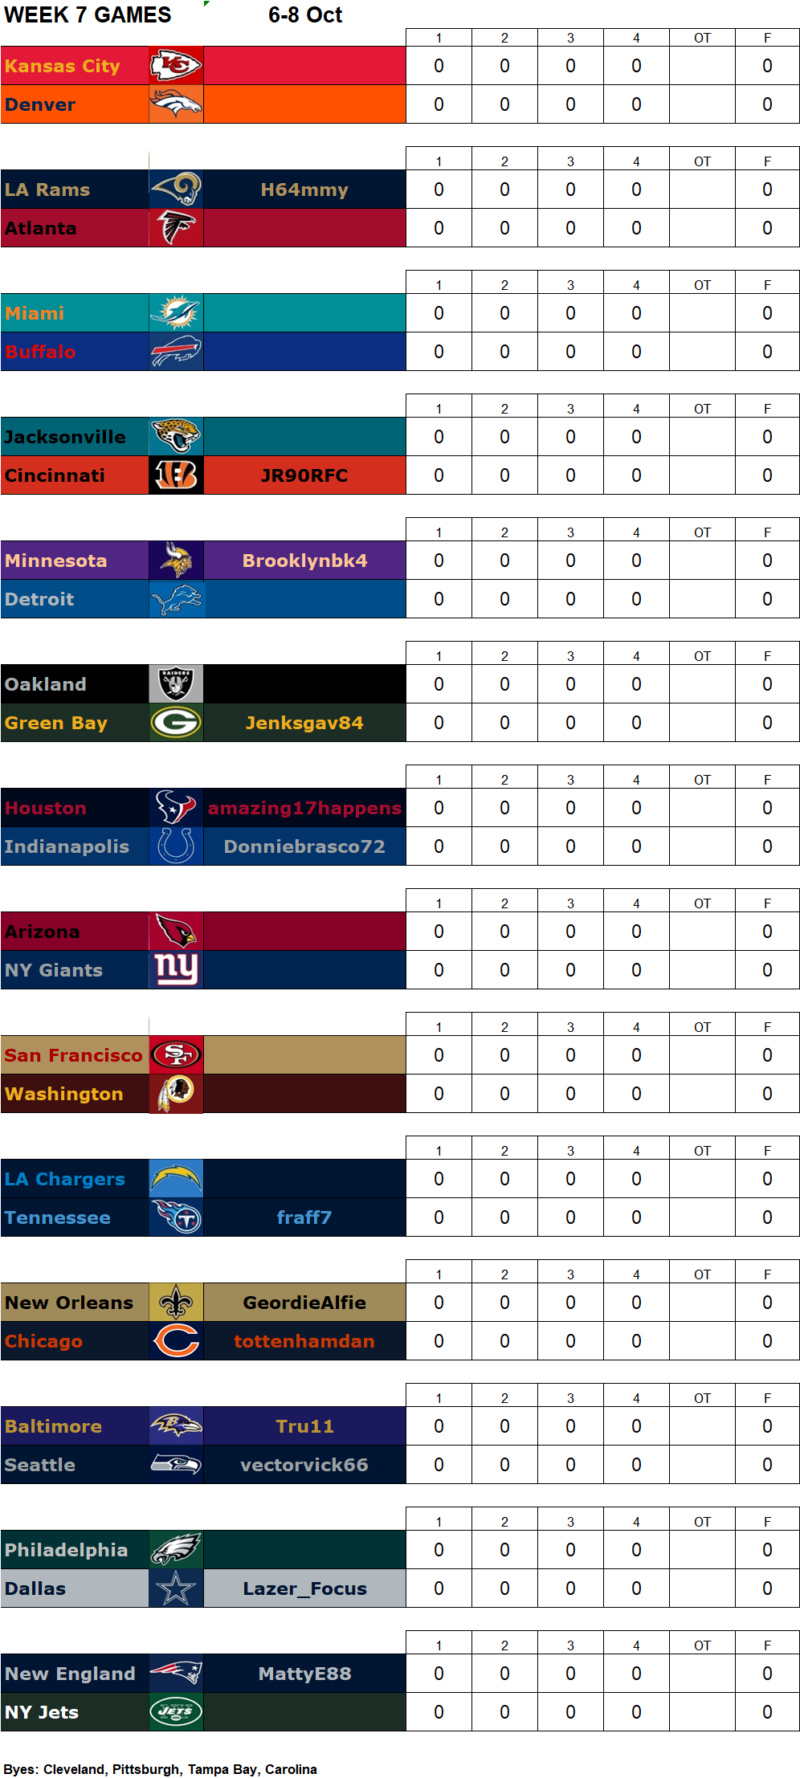 Week 7 Matchups, 6th - 8th October W7g16